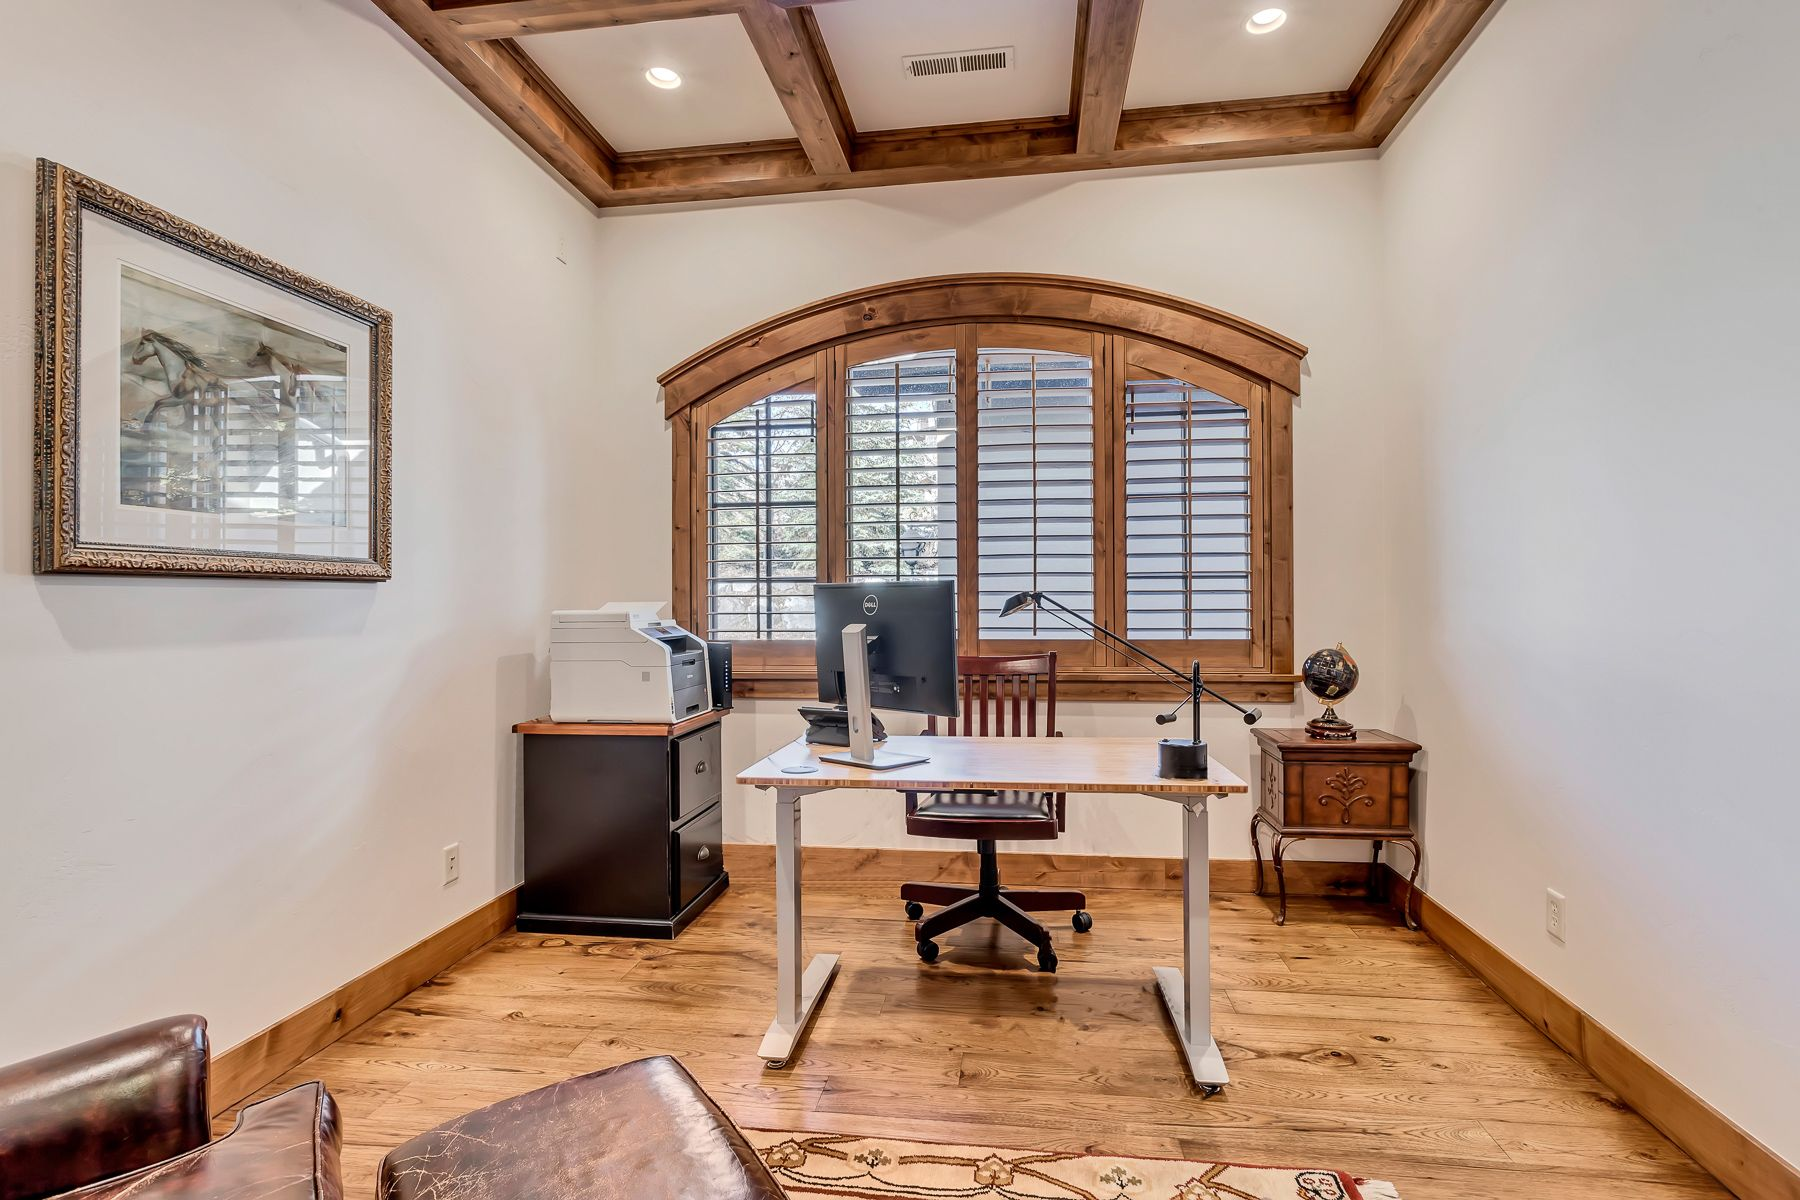 The Seller's pride of ownership is obvious throughout this well built and meticulously maintained home. #WindermereUtah #DreamHome #UtahHomes #HomeOffice #HomeOfficeDecor #HomeOfficeDesign #Office #Workspace #HomeWorkspace #DreamHome #LuxuryHome #LuxuryLiving